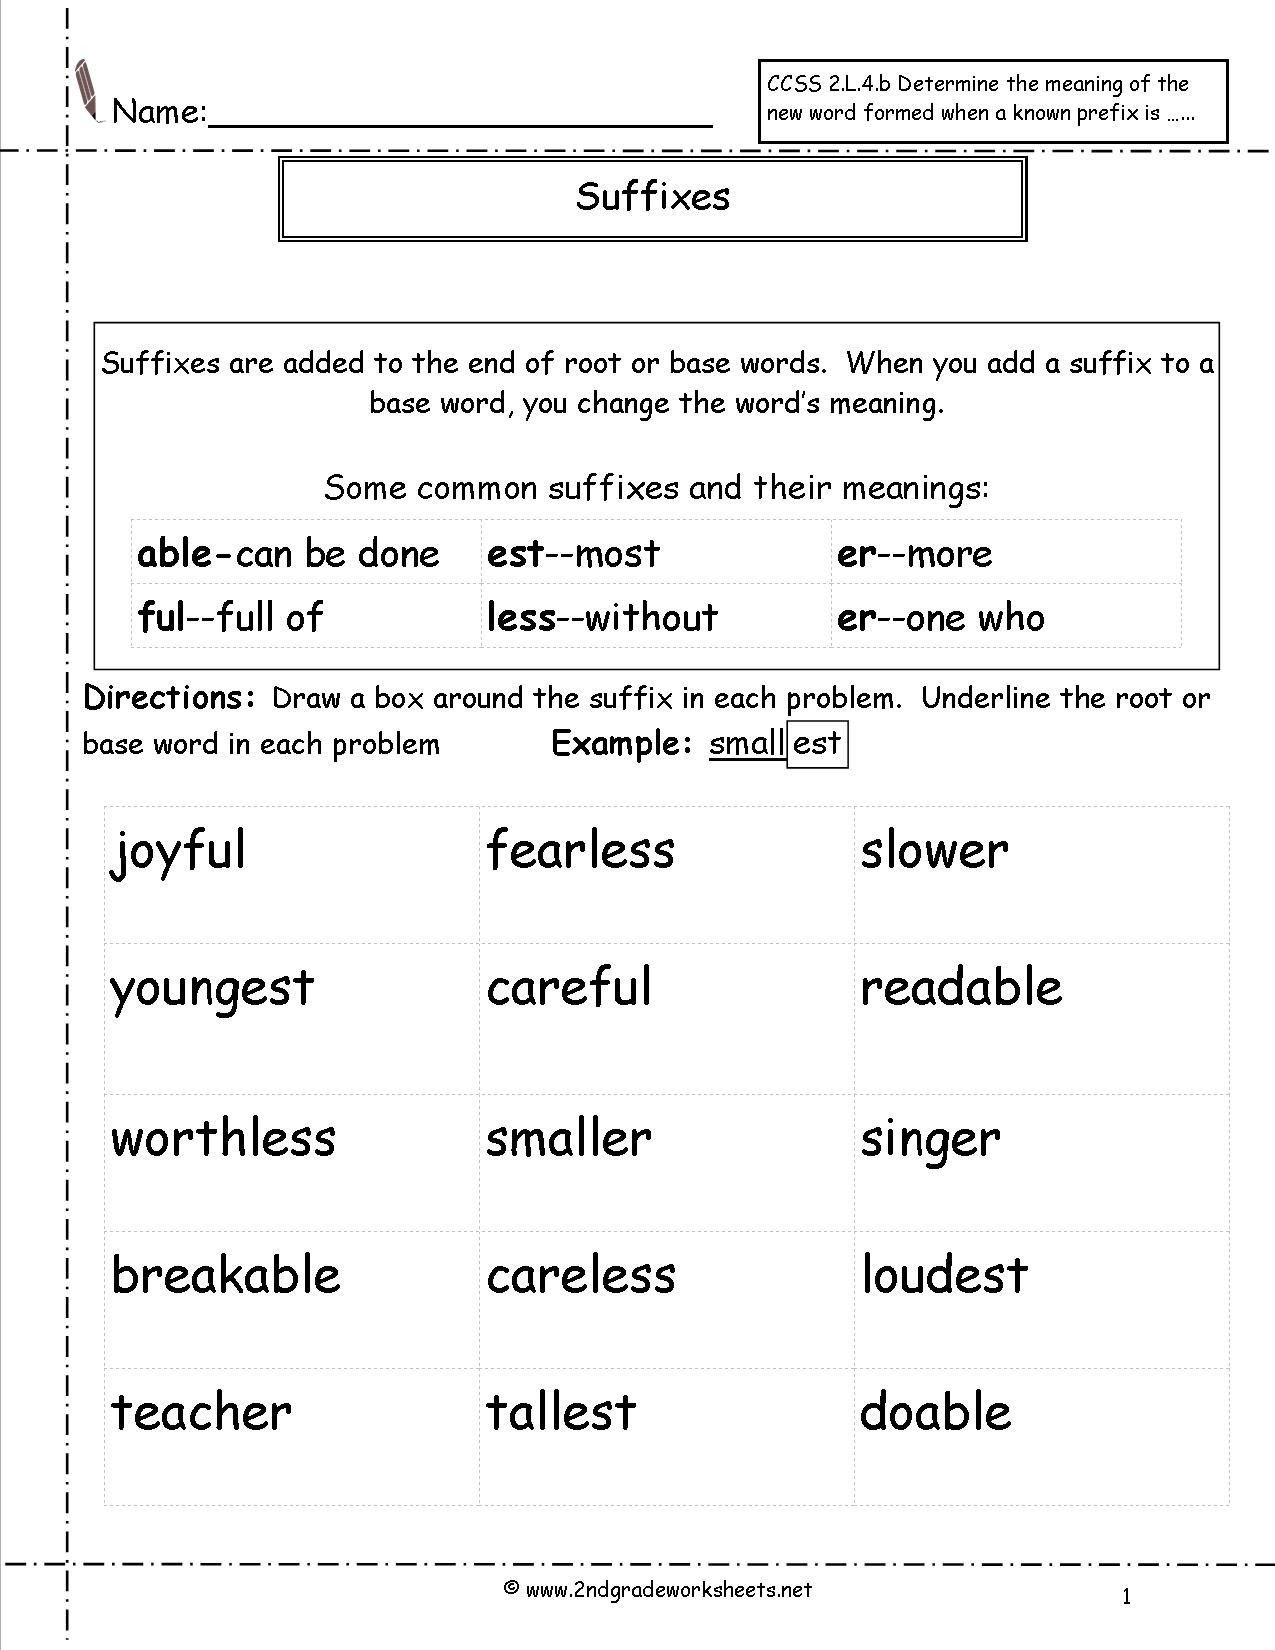 Prefixes and Suffixes Worksheets Pdf 41 Innovative Prefix Worksheets for You